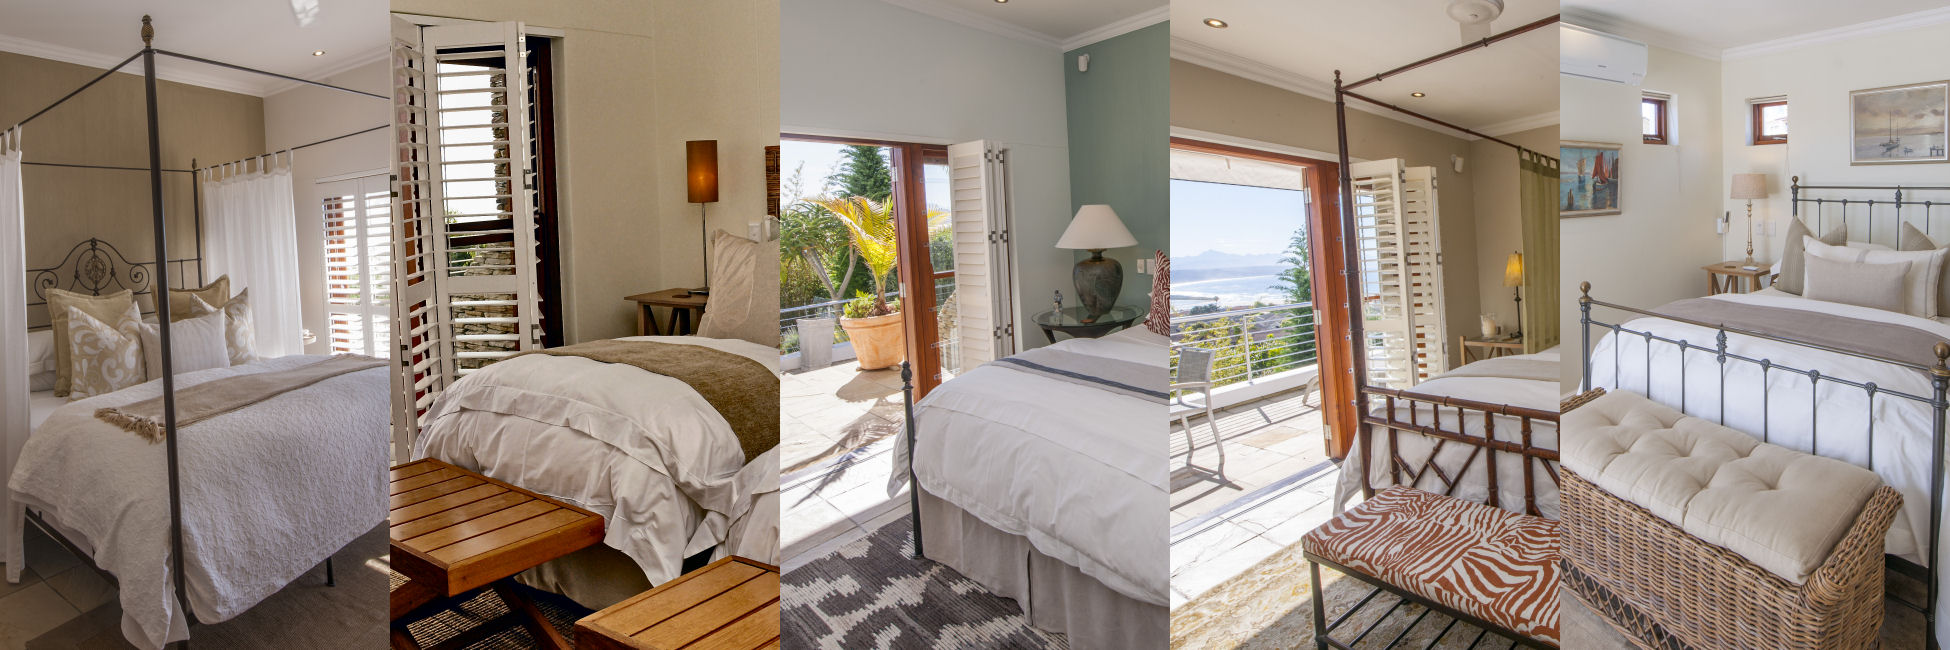 Honeymoon Suite Accommodation Plettenberg Bay